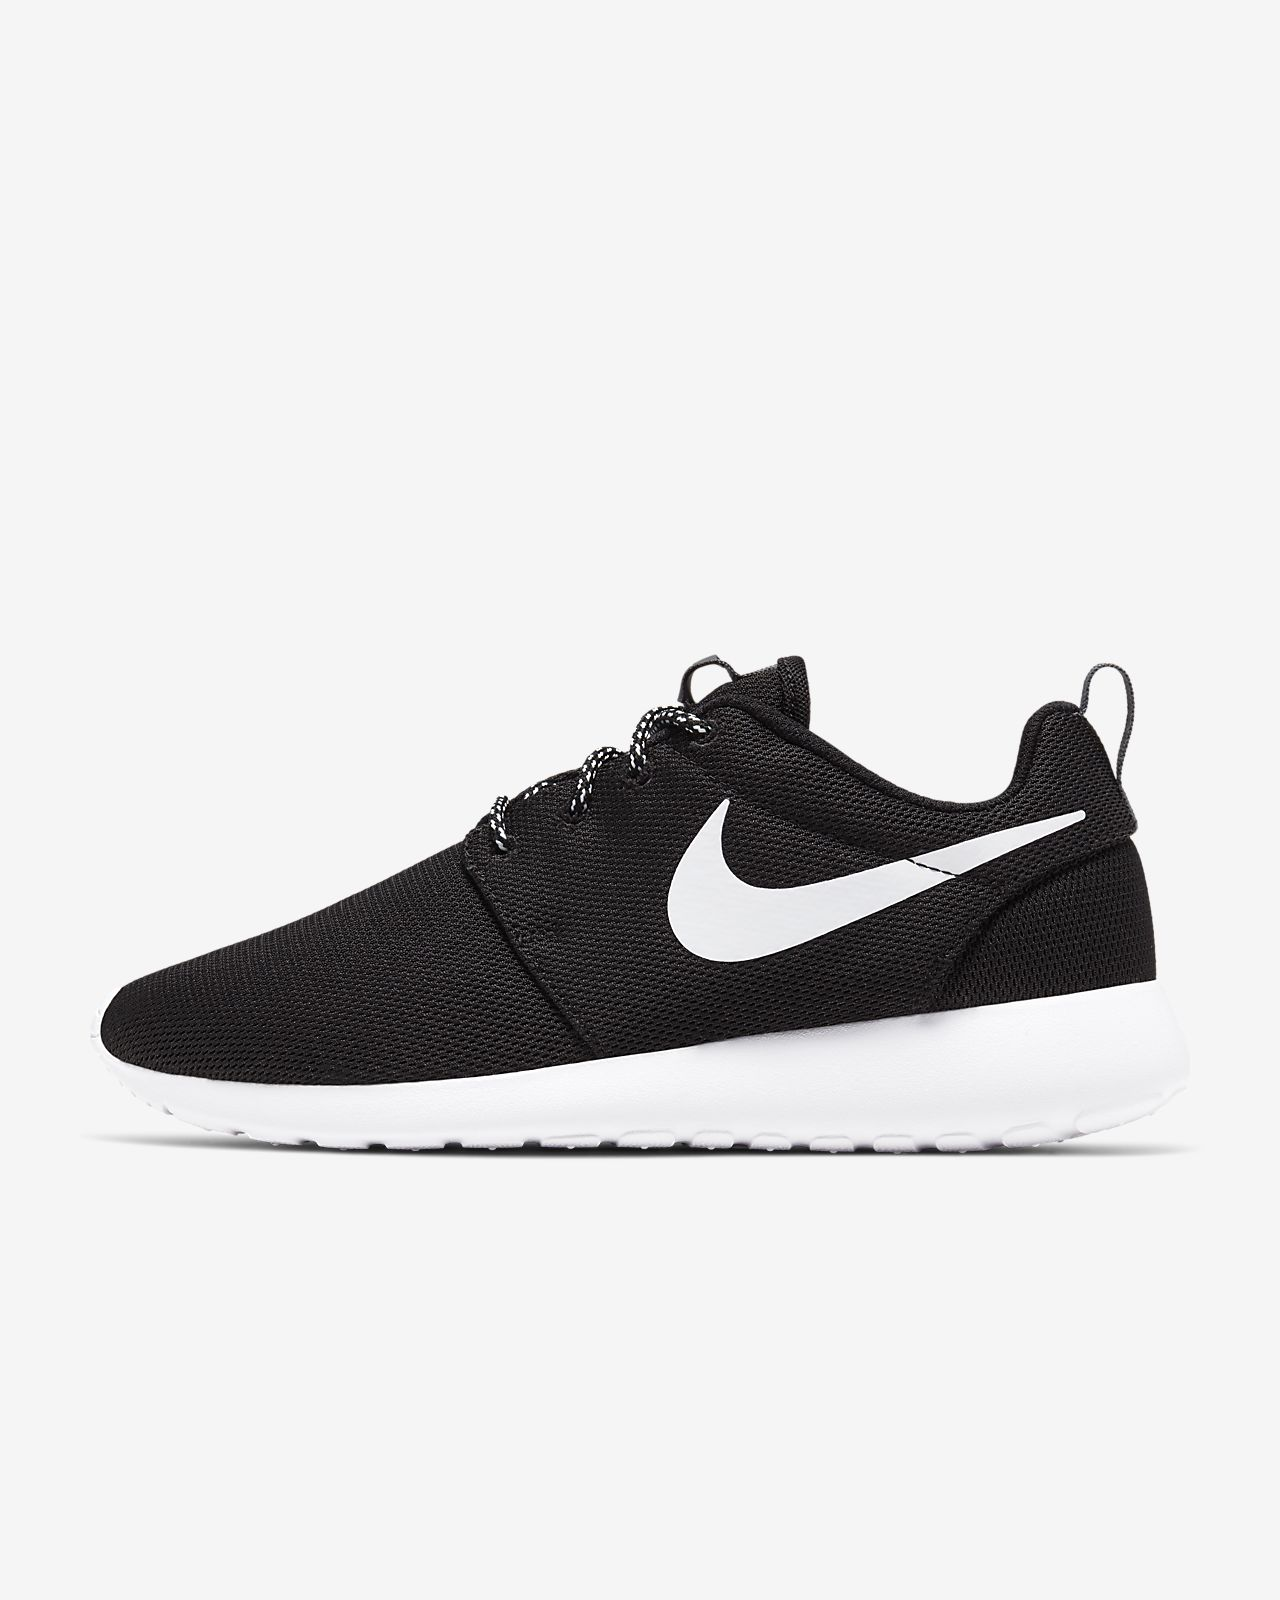 san francisco ad425 c2253 Nike Roshe One Womens Shoe. Nike.com